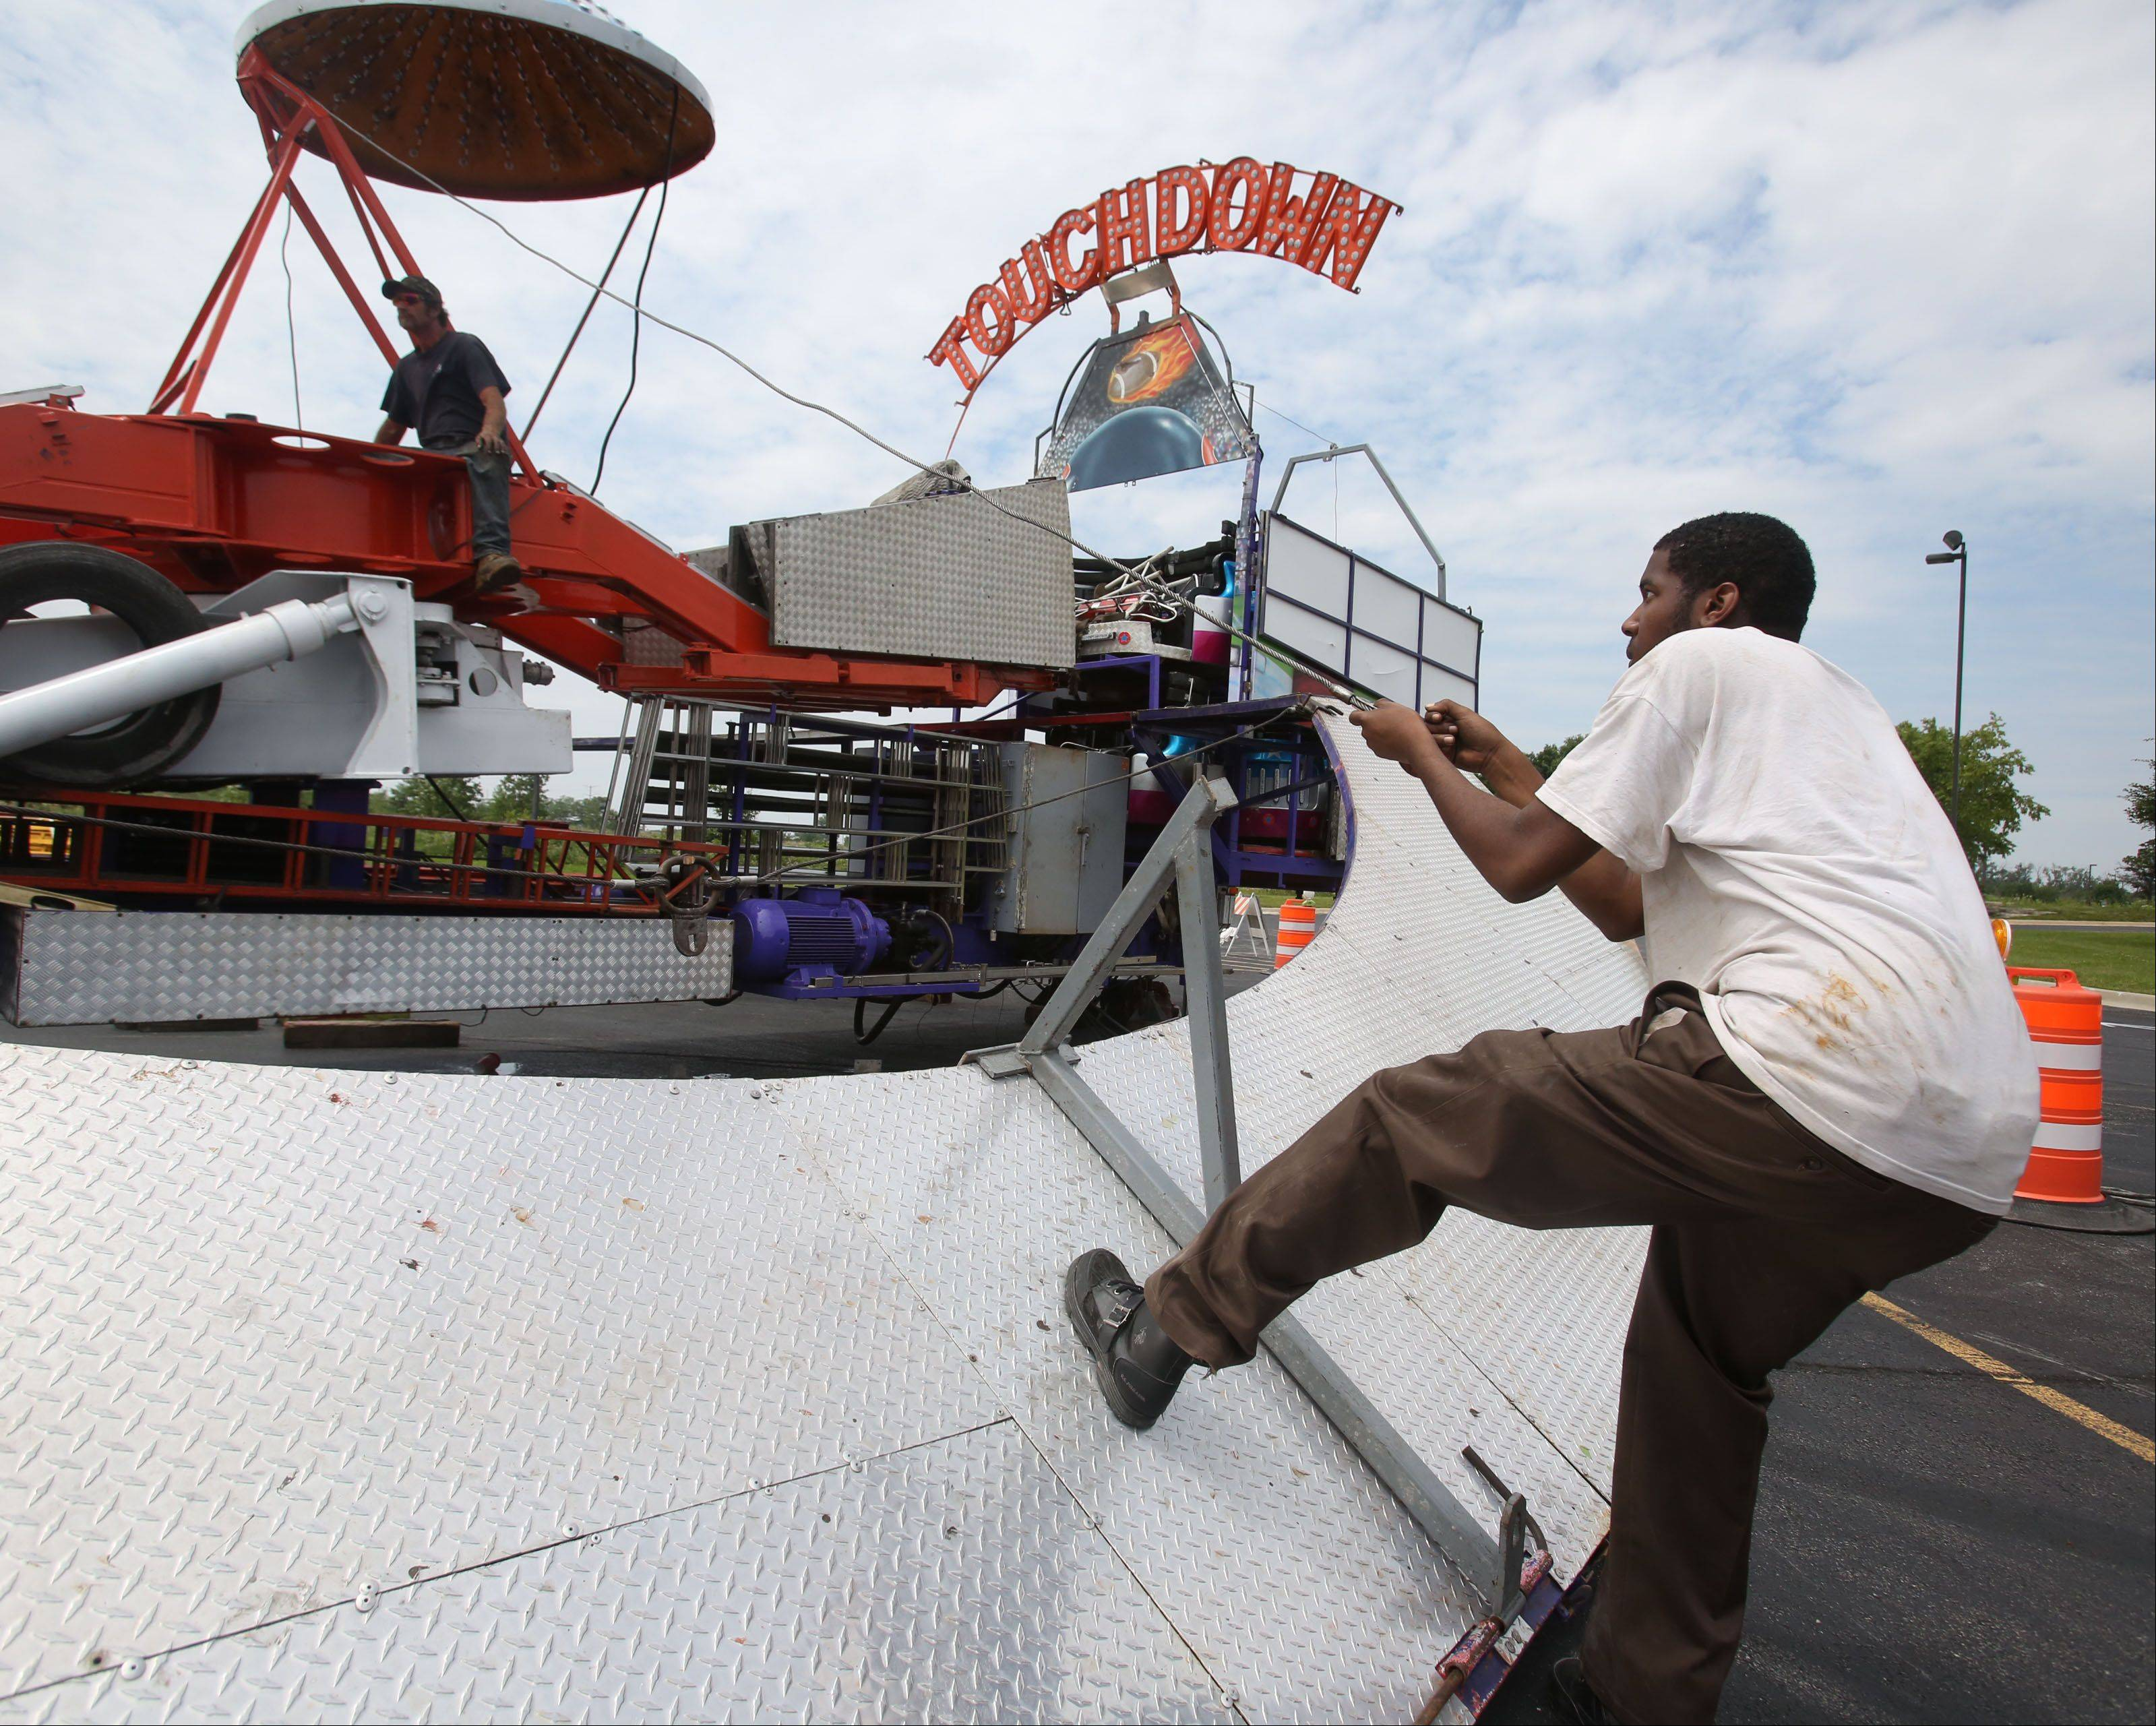 Paul Smiley of Chicago pulls on a cable as he and other workers set up the Touchdown ride in the Sears Centre parking lot.